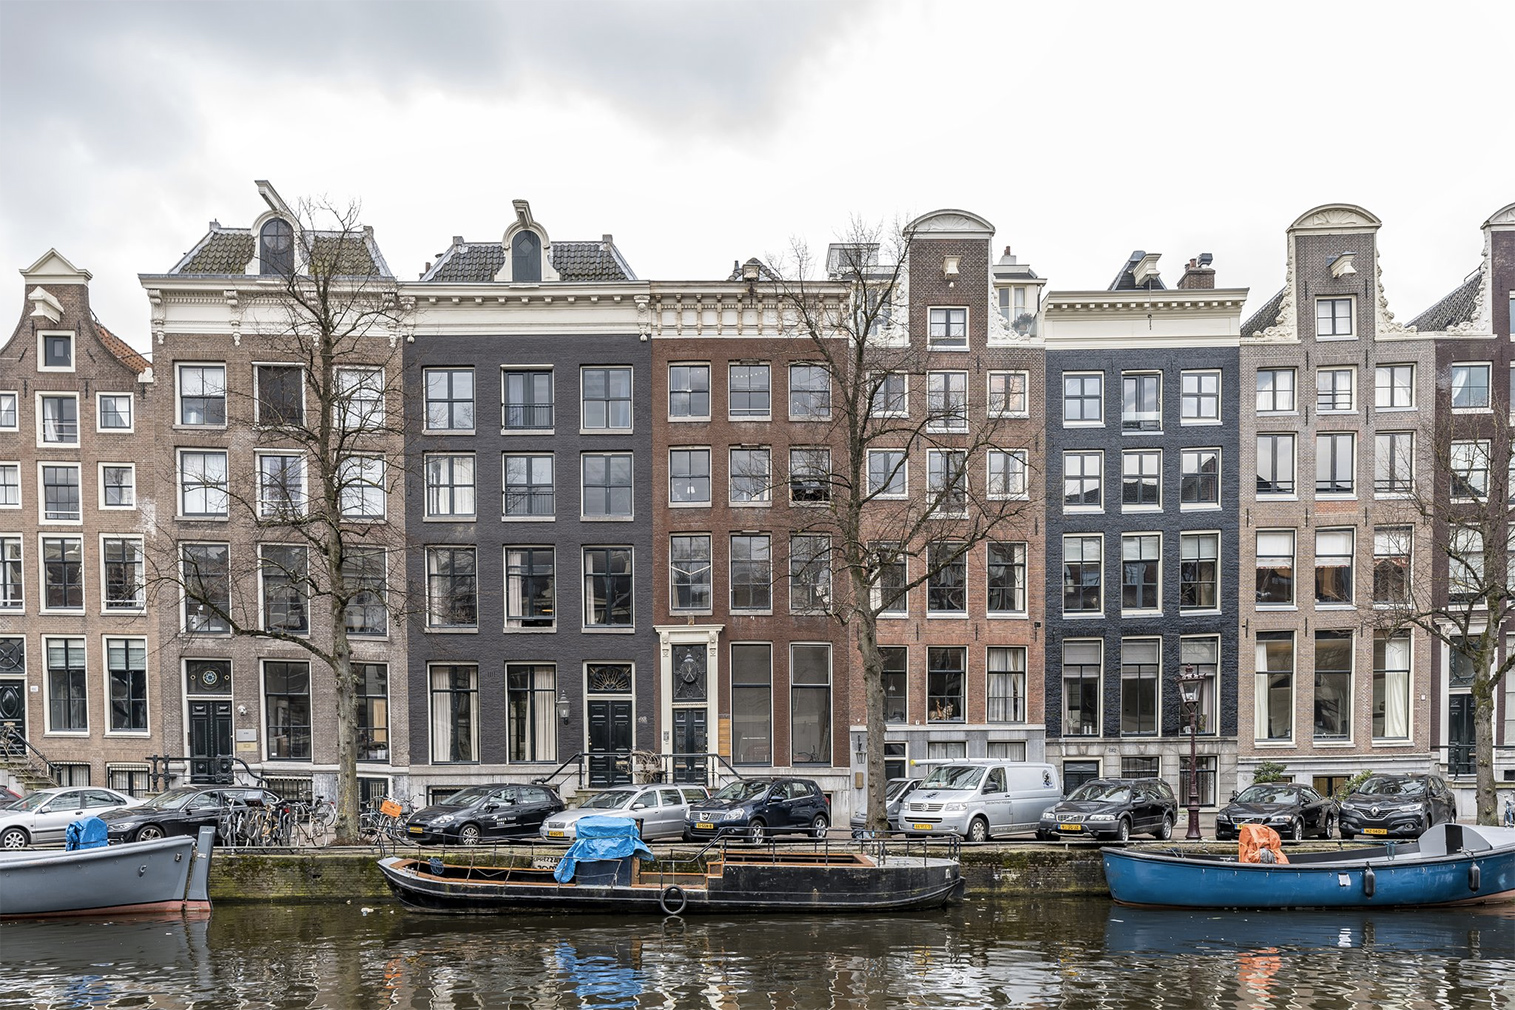 Property of the week: an Amsterdam canal house ripe for conversion